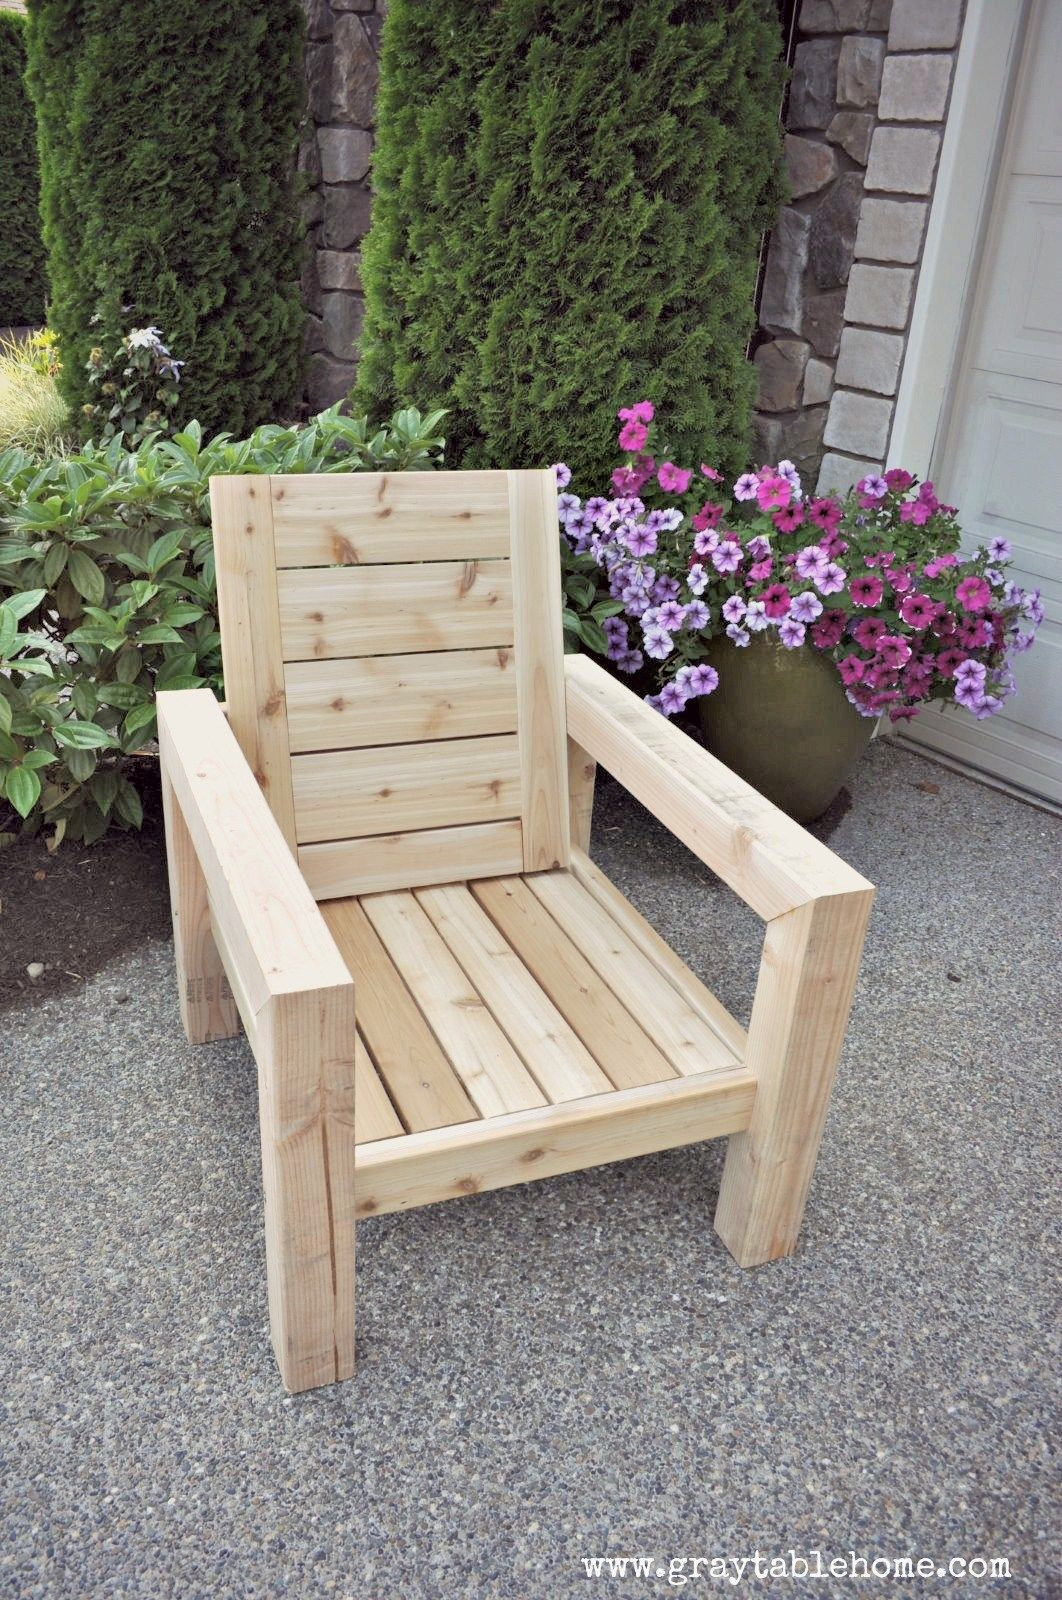 Diy Modern Rustic Outdoor Chair Plans Using Outdoor